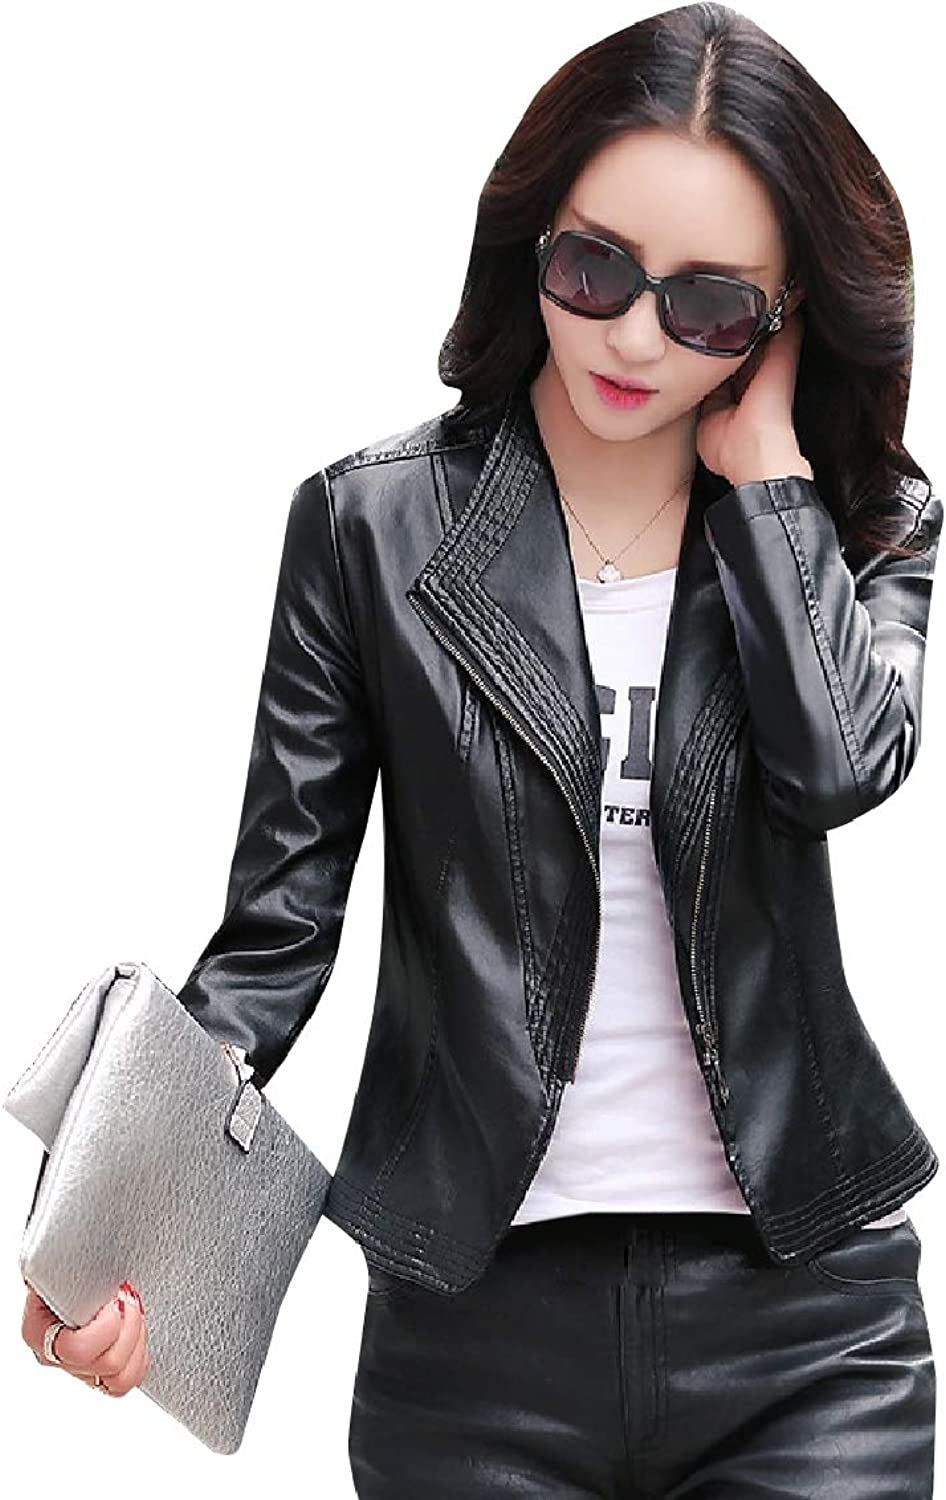 FreelyWomen Skinny Motorcycle Leather Windproof Outwear Coat Jacket